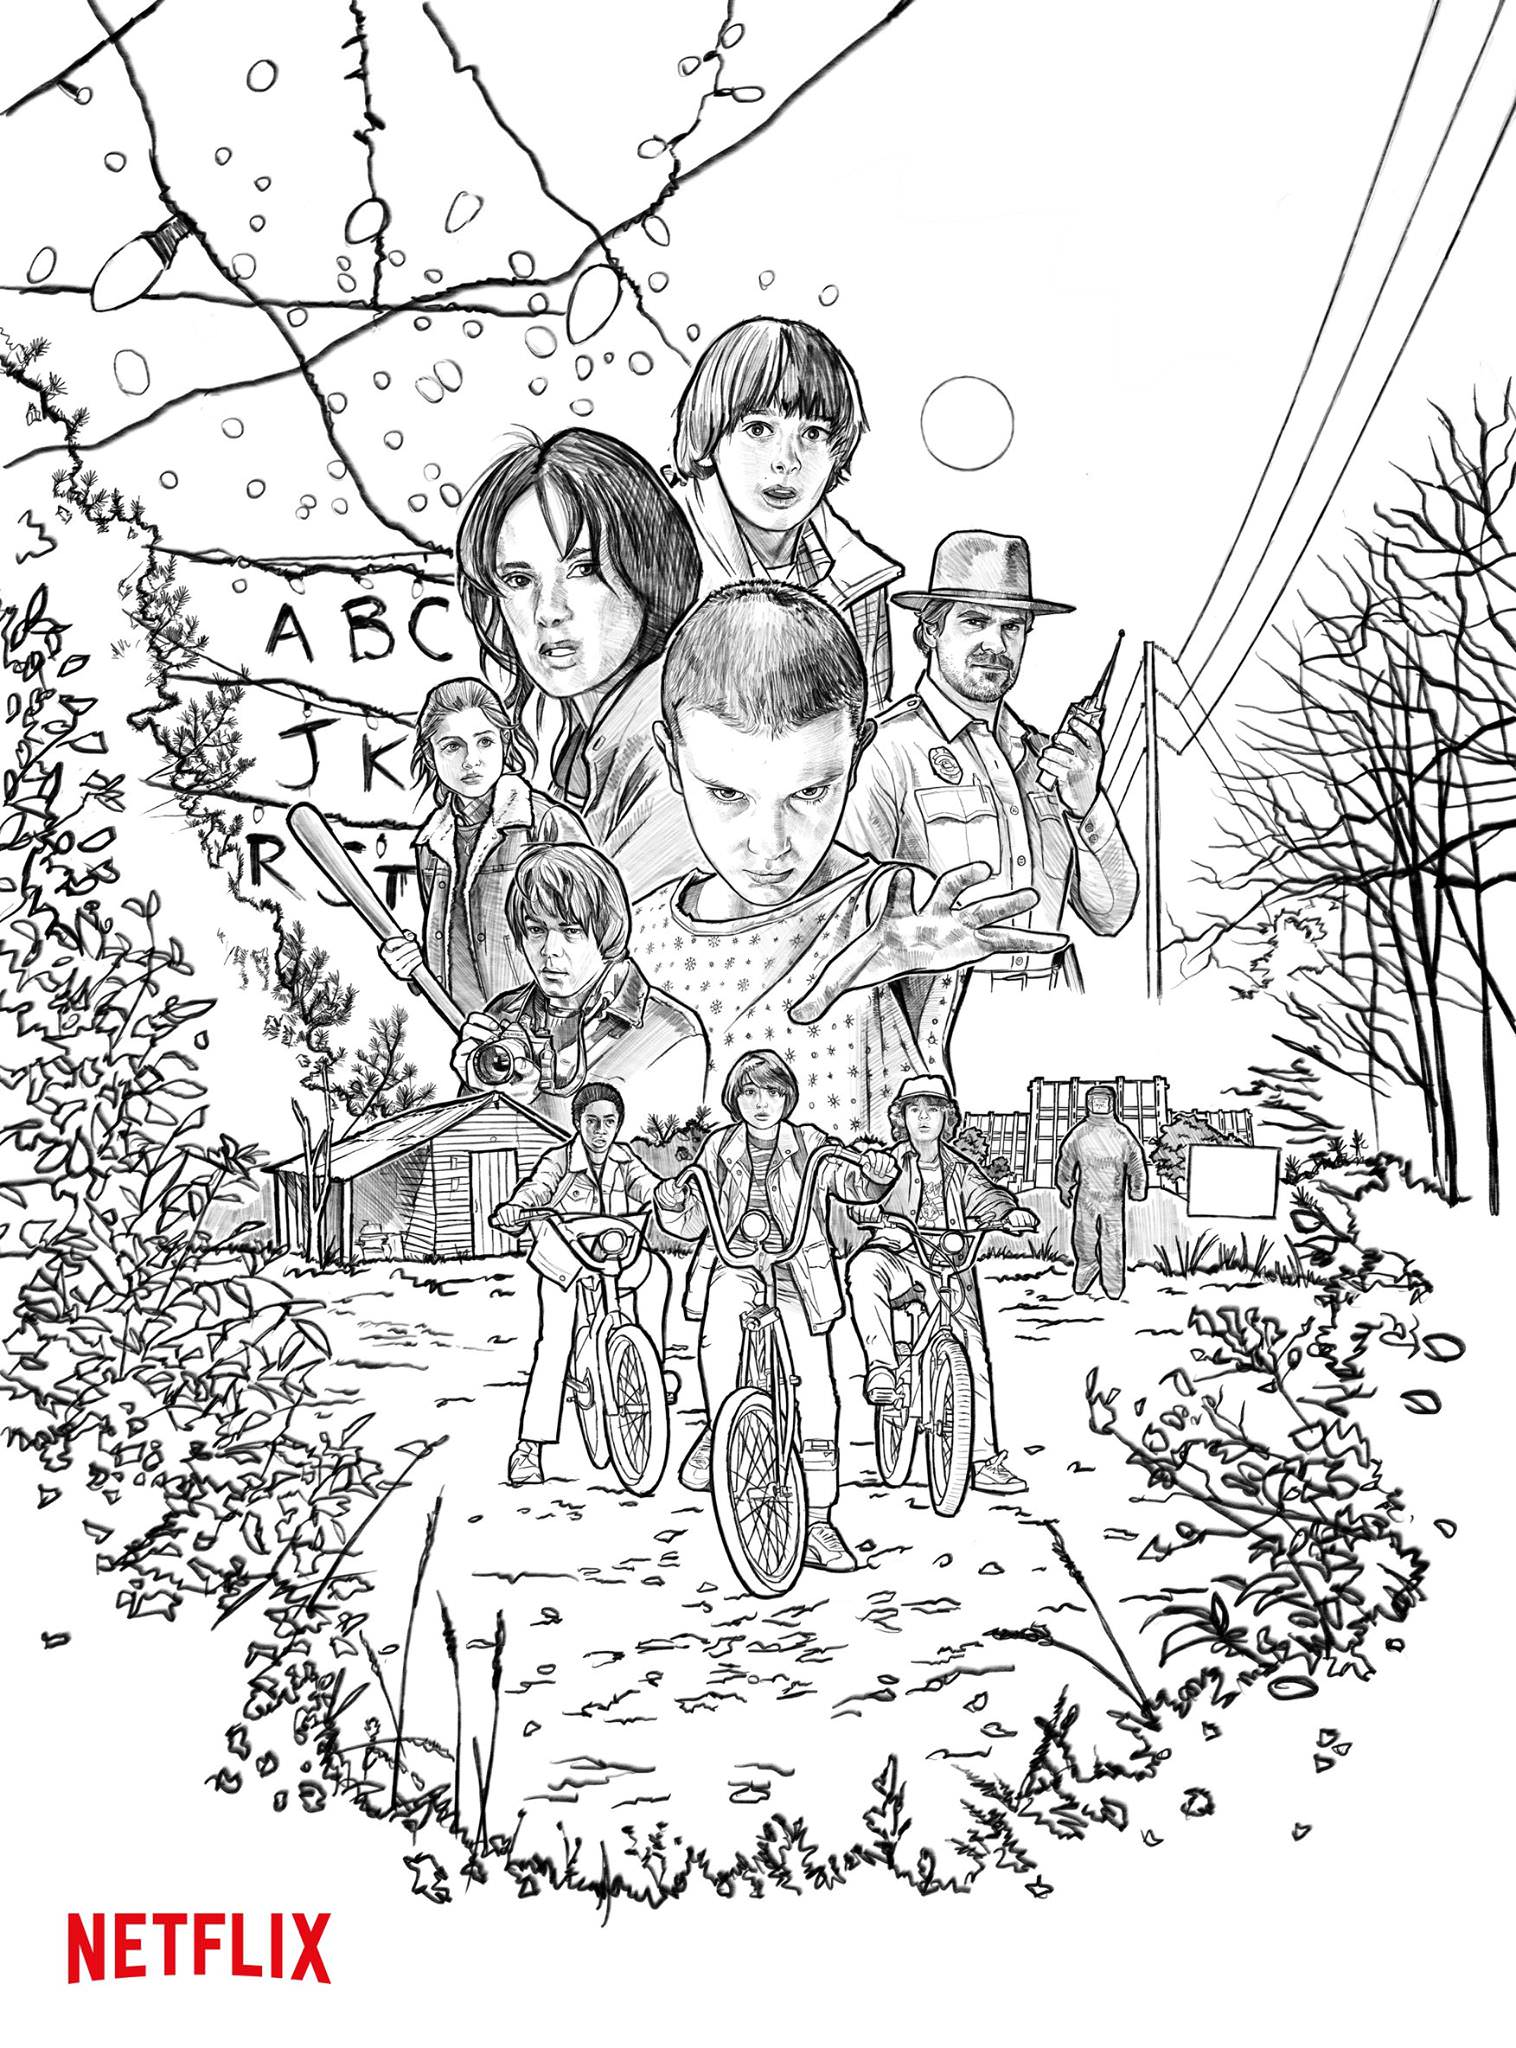 kyle-lambert-stranger-things-boceto